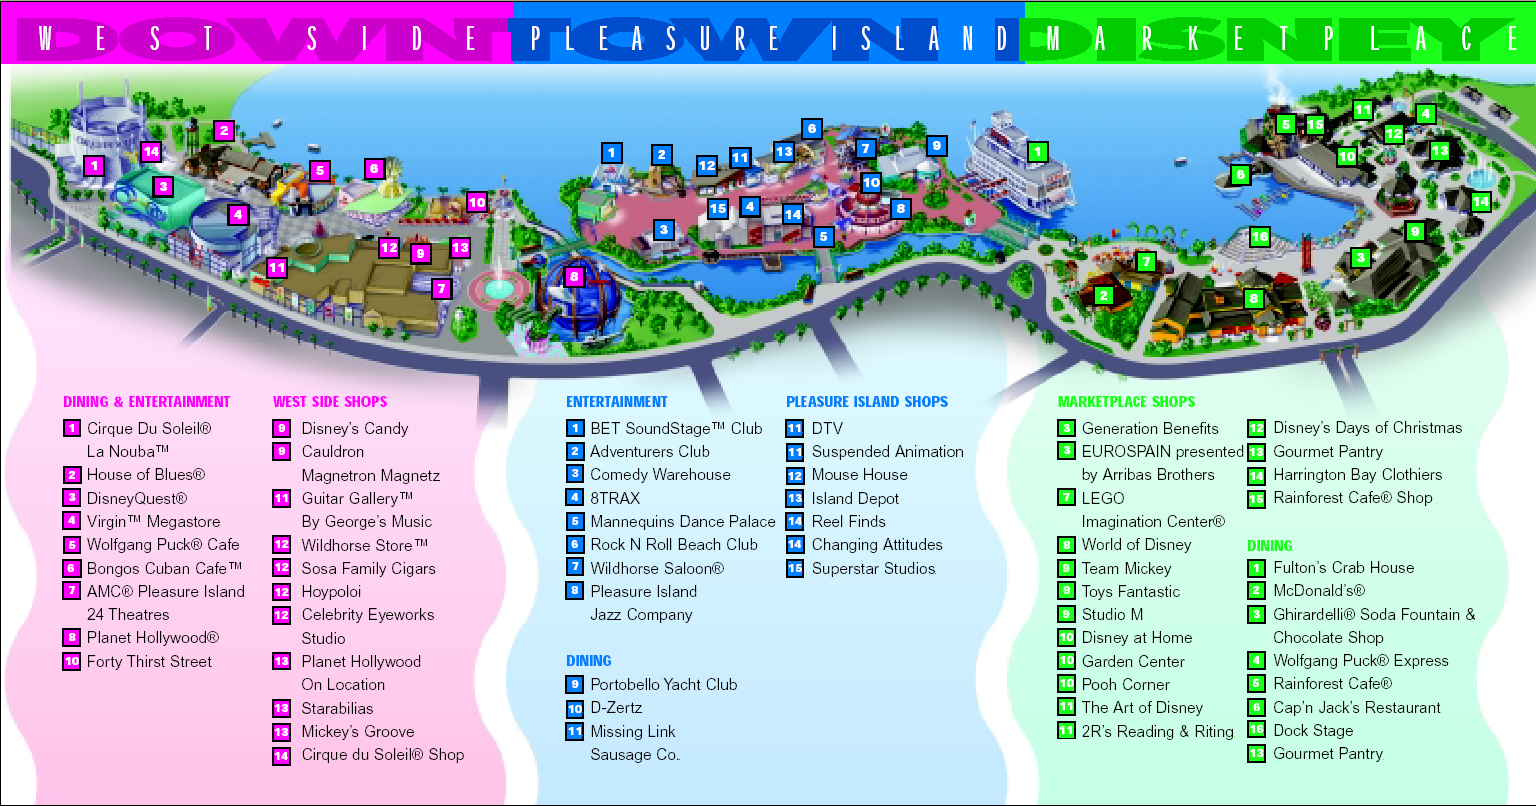 http://3.bp.blogspot.com/-xIskEja5K-Y/T5nTxNewmoI/AAAAAAAAGqQ/8wqA52qCGKU/s1600/disney-world-downtown-disney-map.jpg